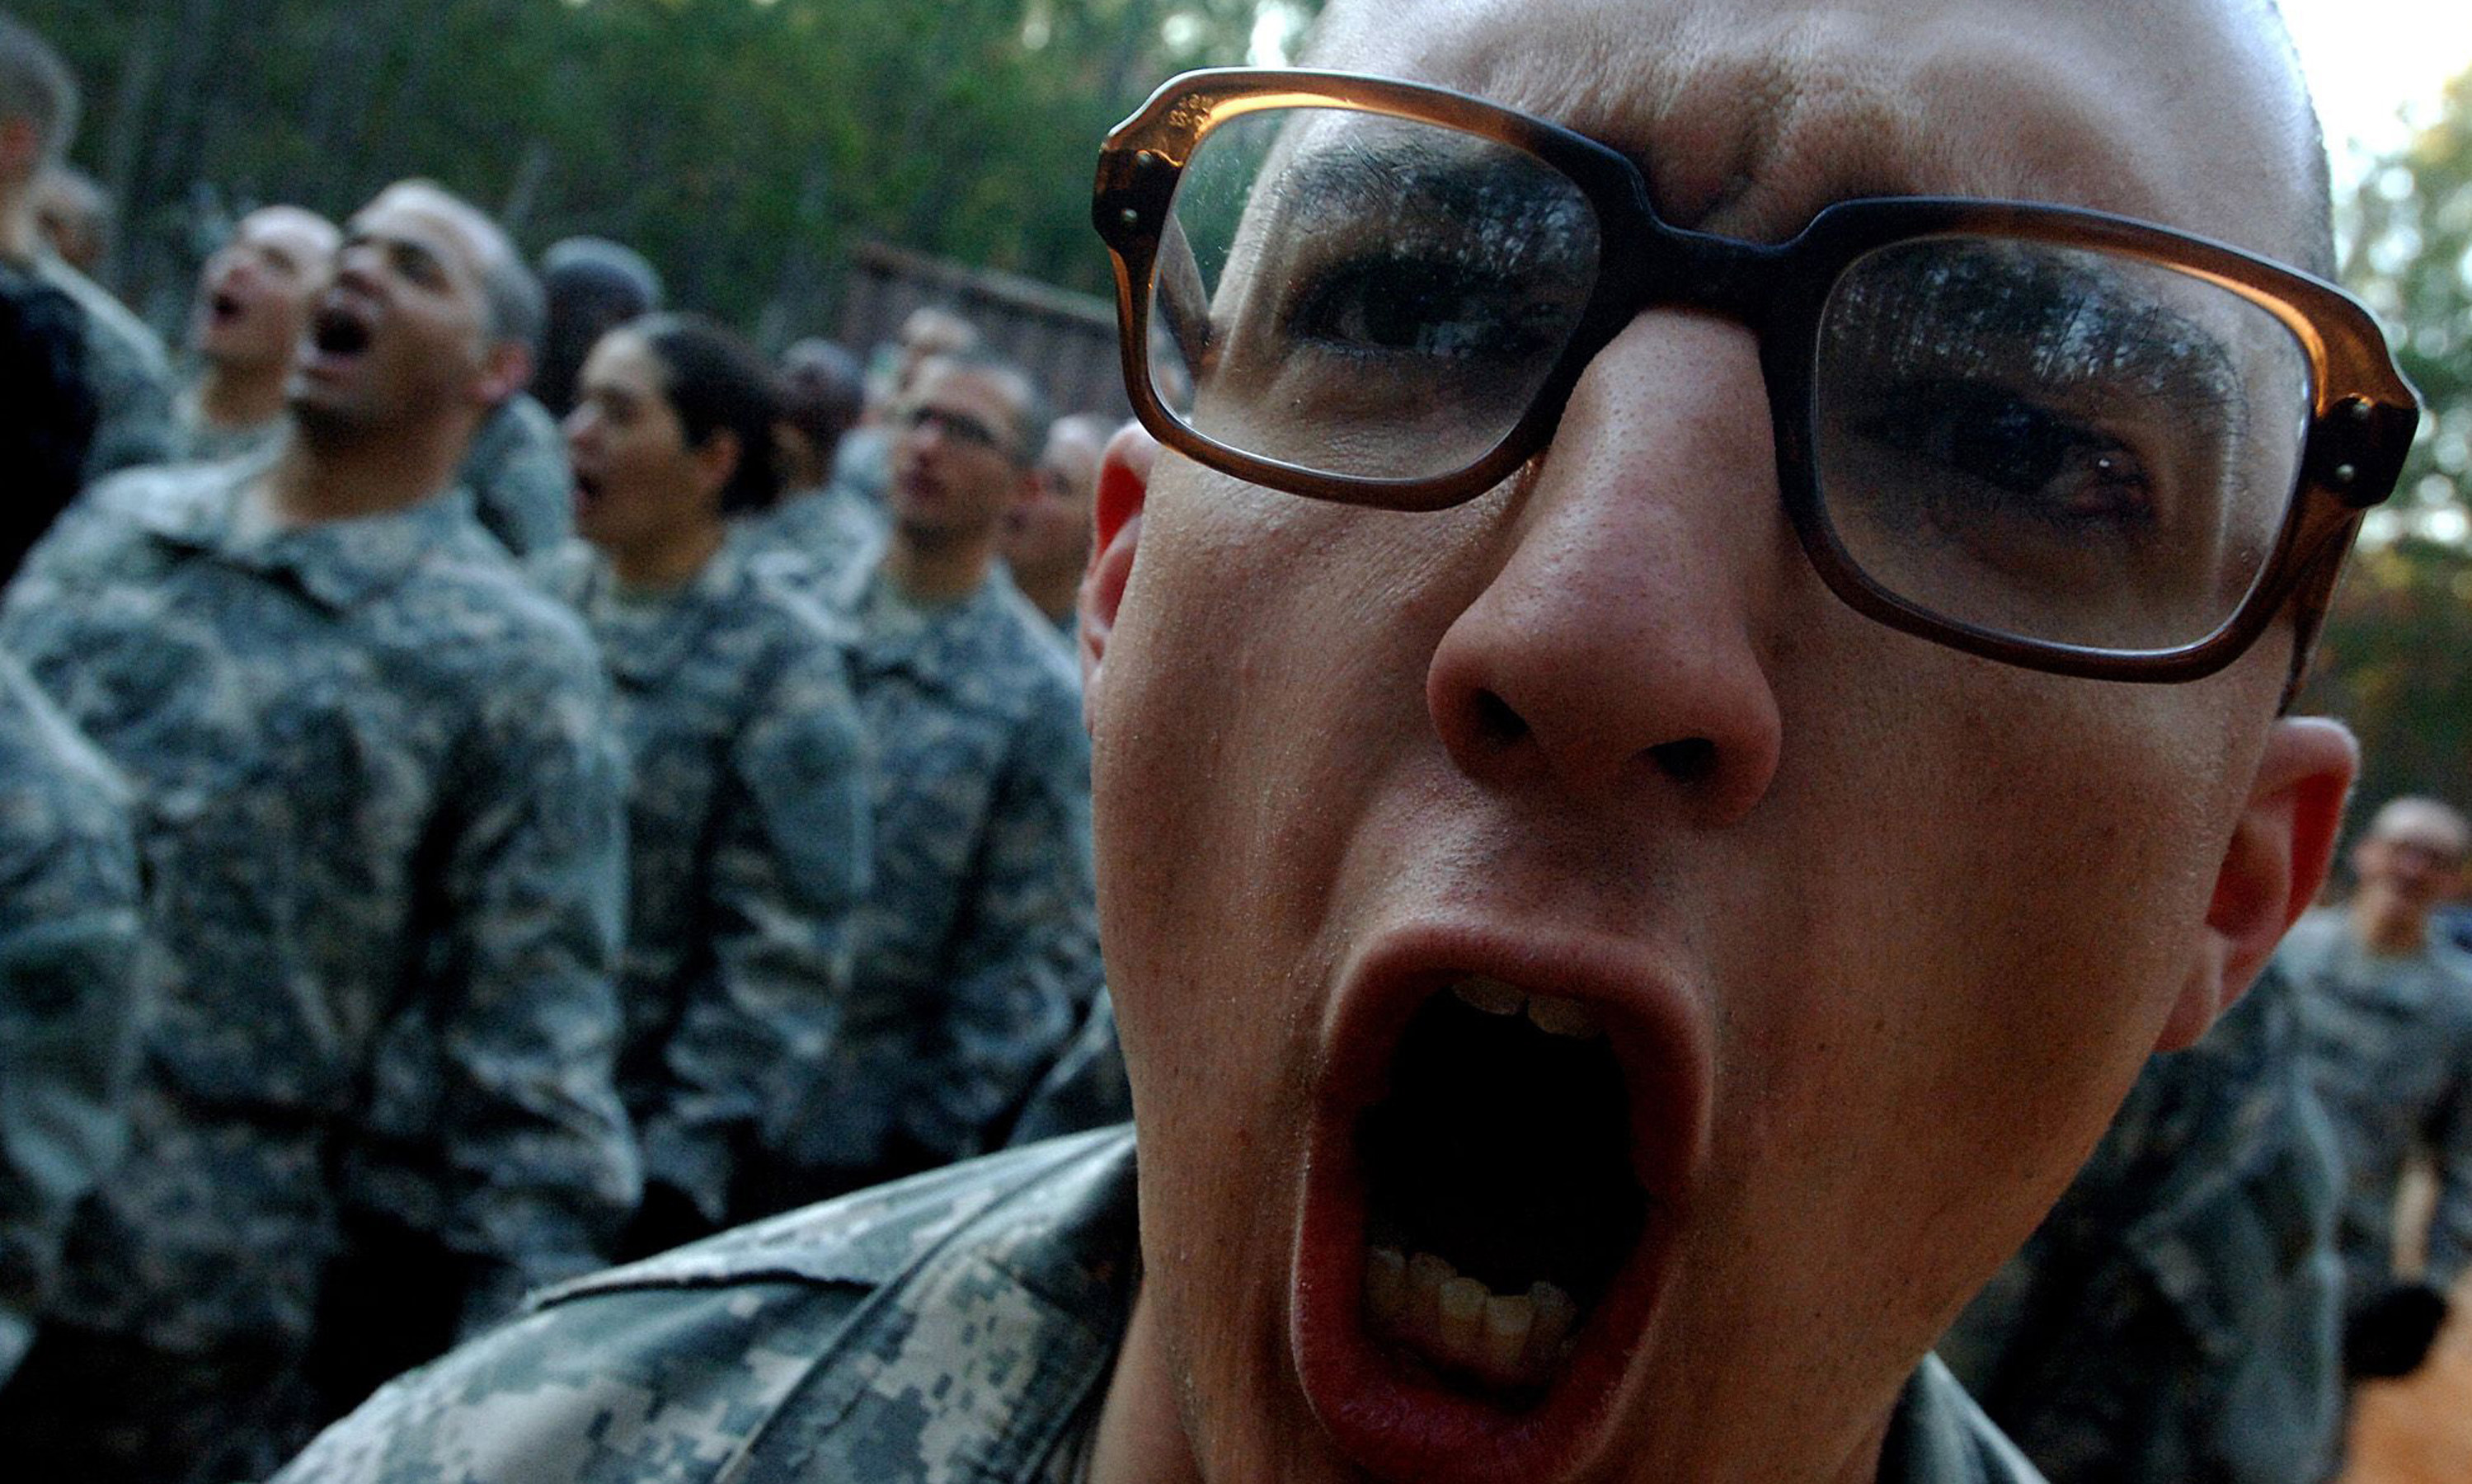 Army looks at extending basic training for new soldiers